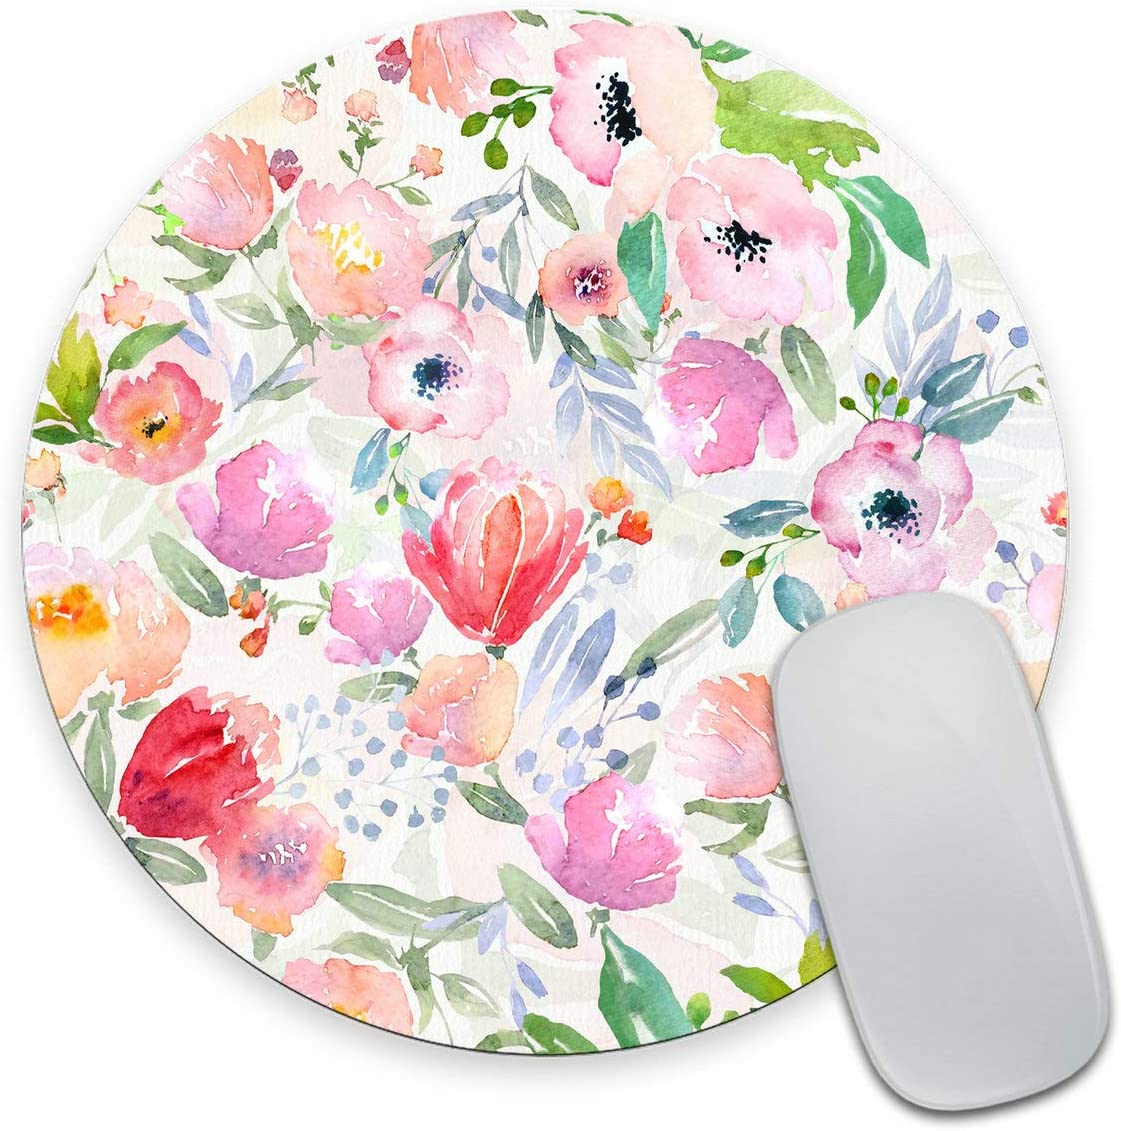 Smooffly Watercolor Flowers Print Round Mouse Pad Custom Design, Colorful Vintage Floral Mousepad Non-Slip Rubber Circular Mouse Pads